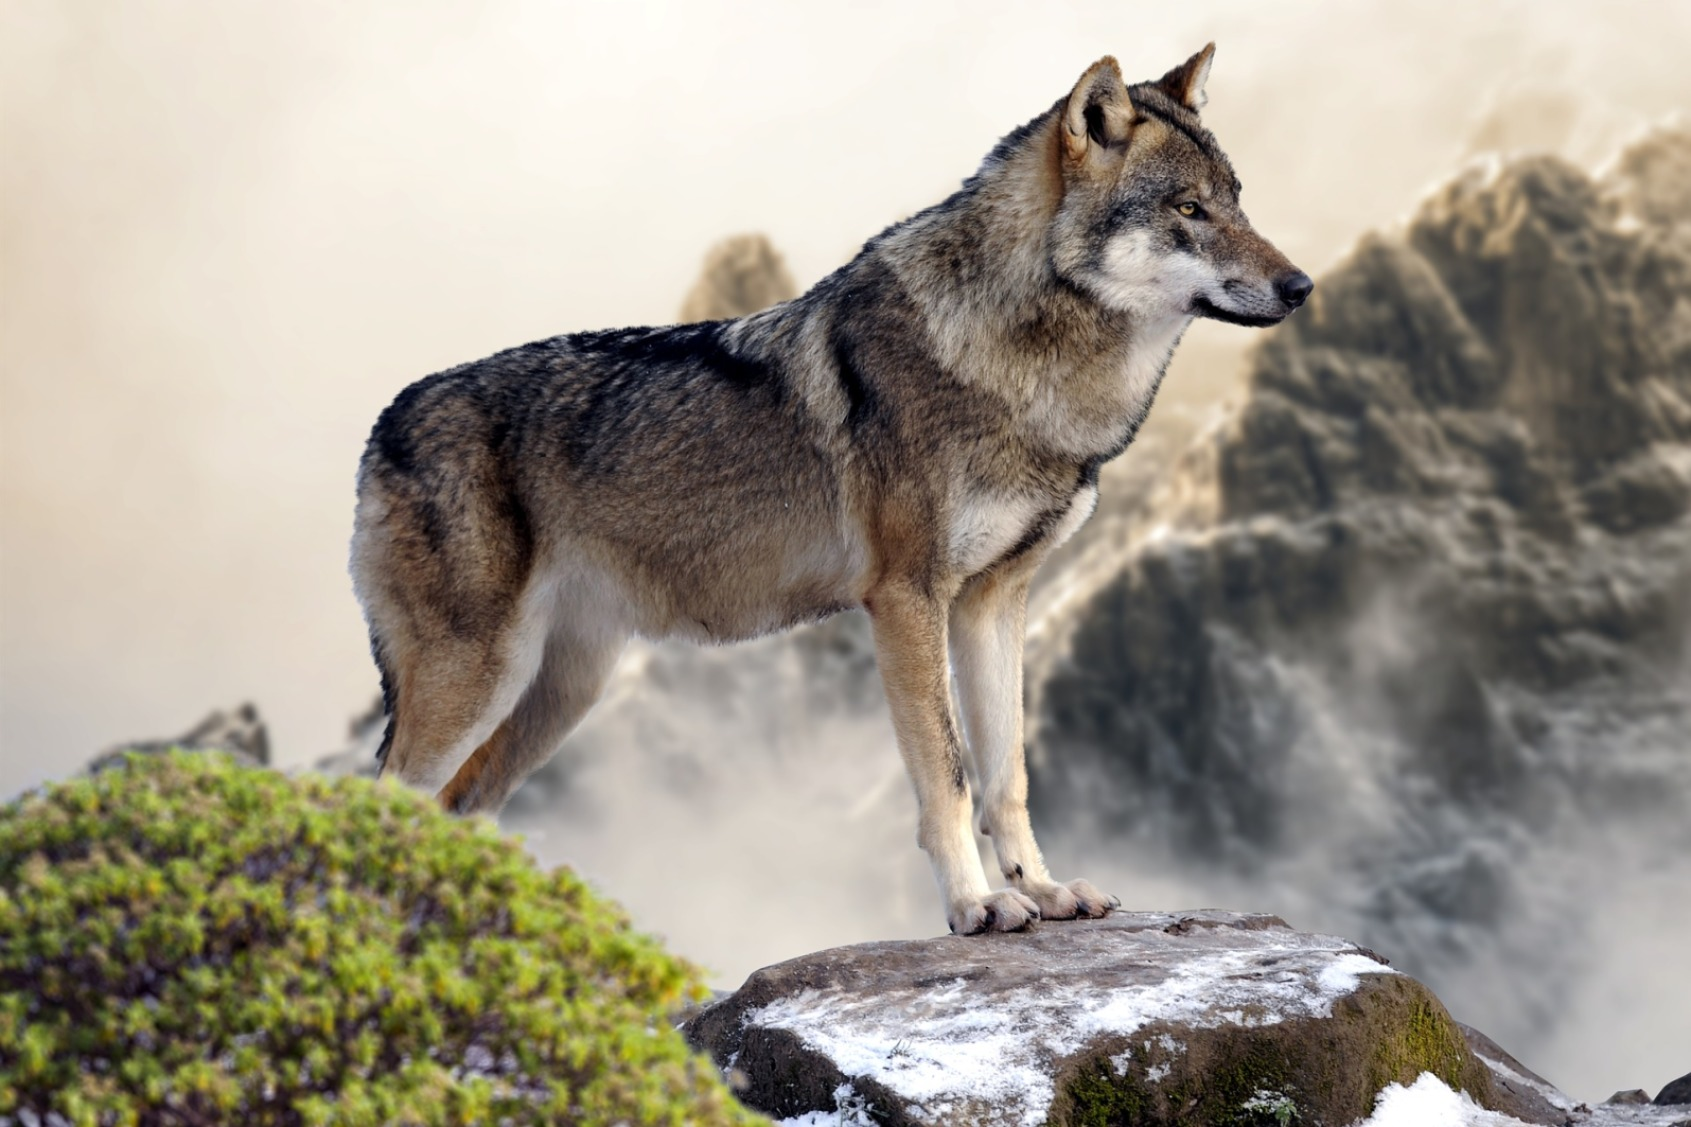 Wolf standing on a rock - Original image